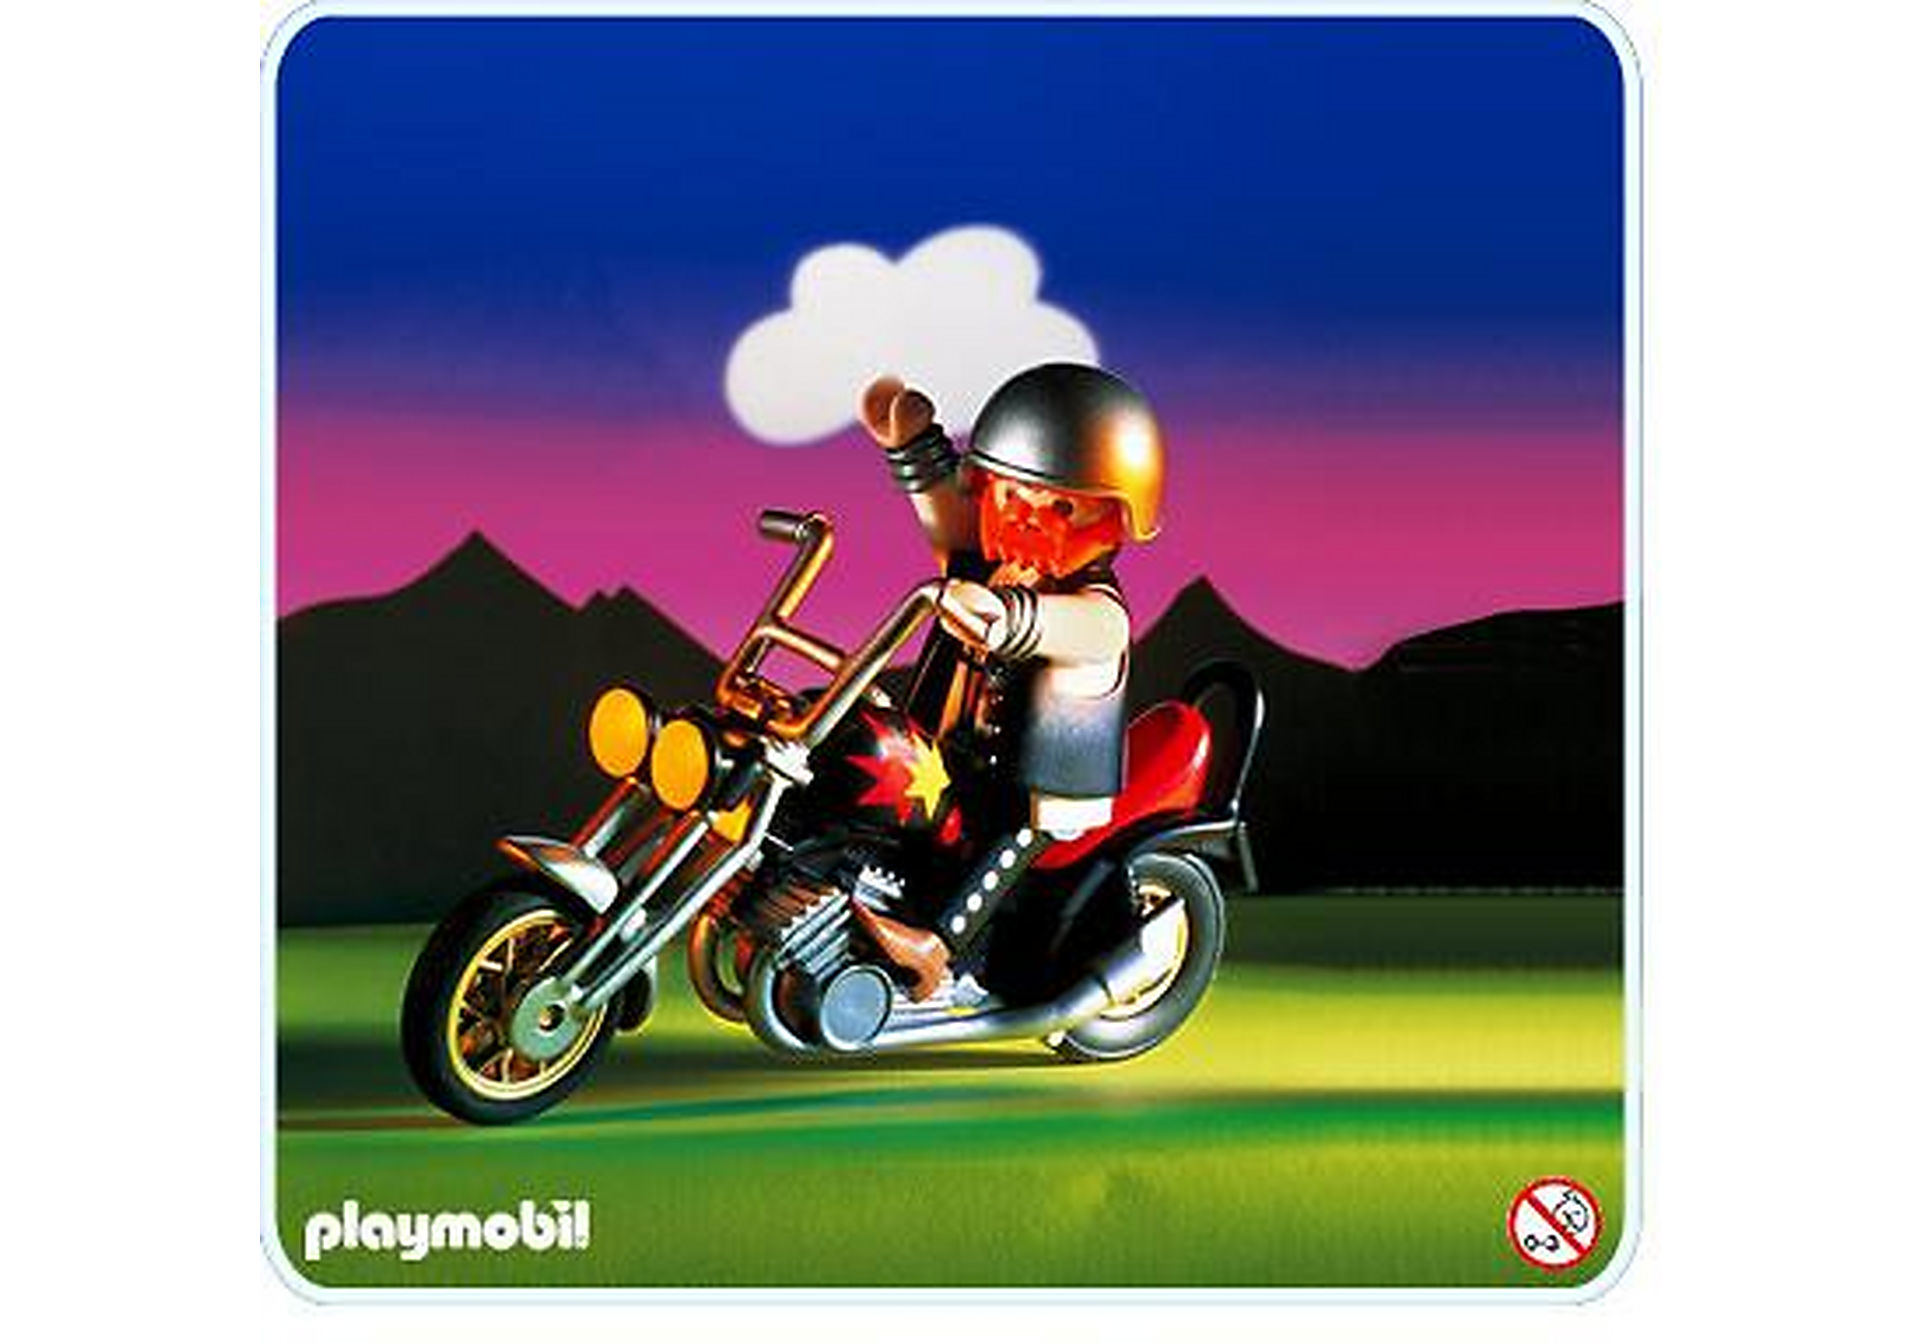 http://media.playmobil.com/i/playmobil/3831-A_product_detail/Motorrad-Chopper